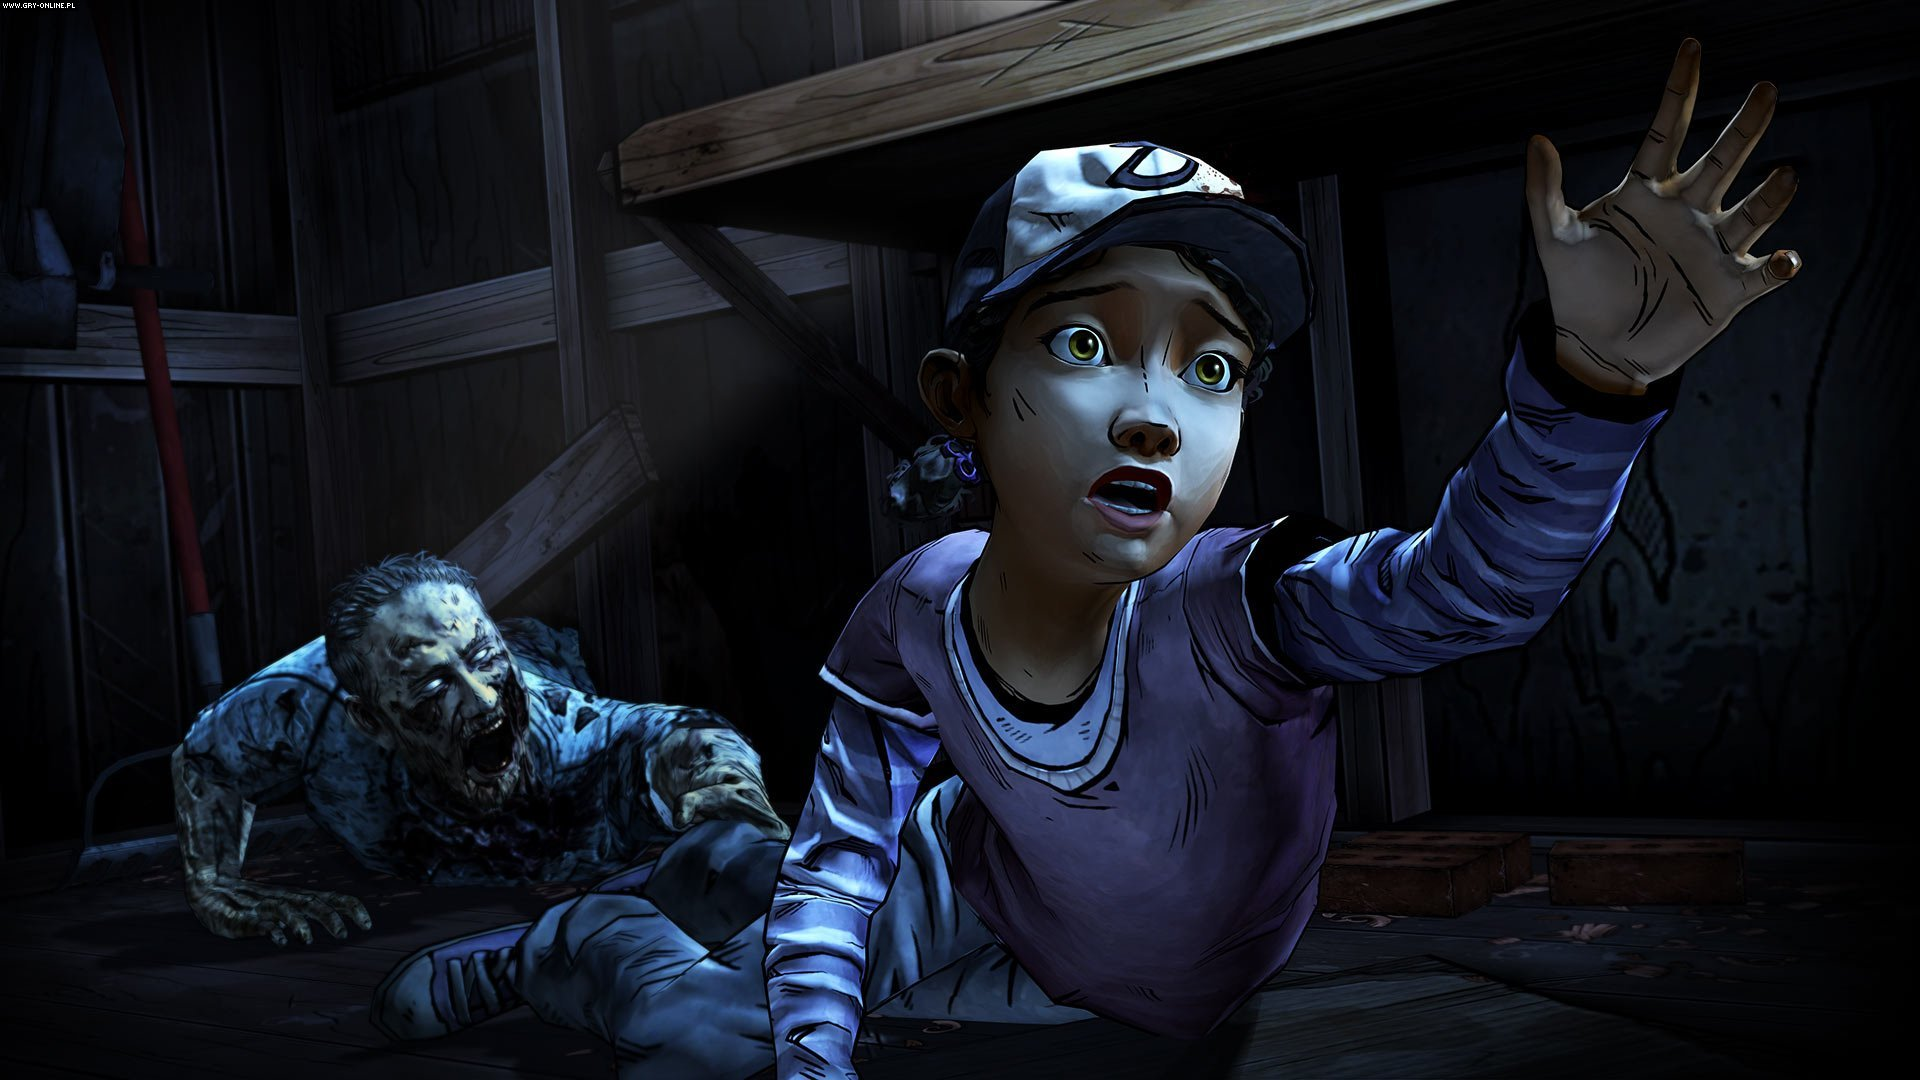 The Walking Dead: A Telltale Games Series - Season Two PC, X360, PS3, PSV, PS4, XONE, AND, iOS Gry Screen 10/12, Telltale Games